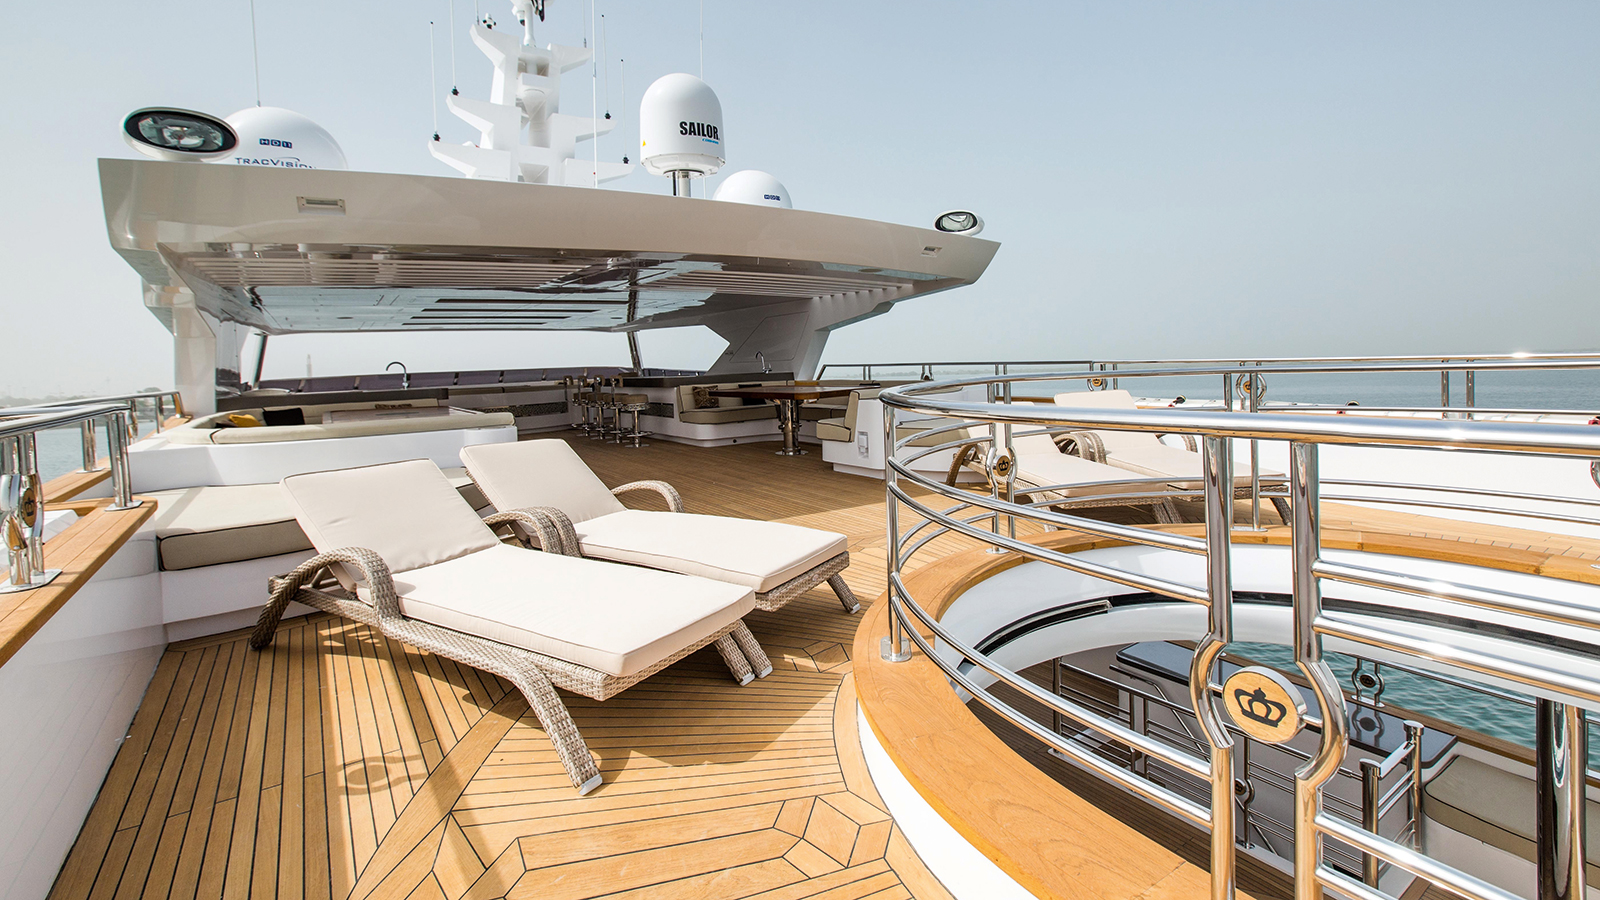 Majesty 155 sun deck